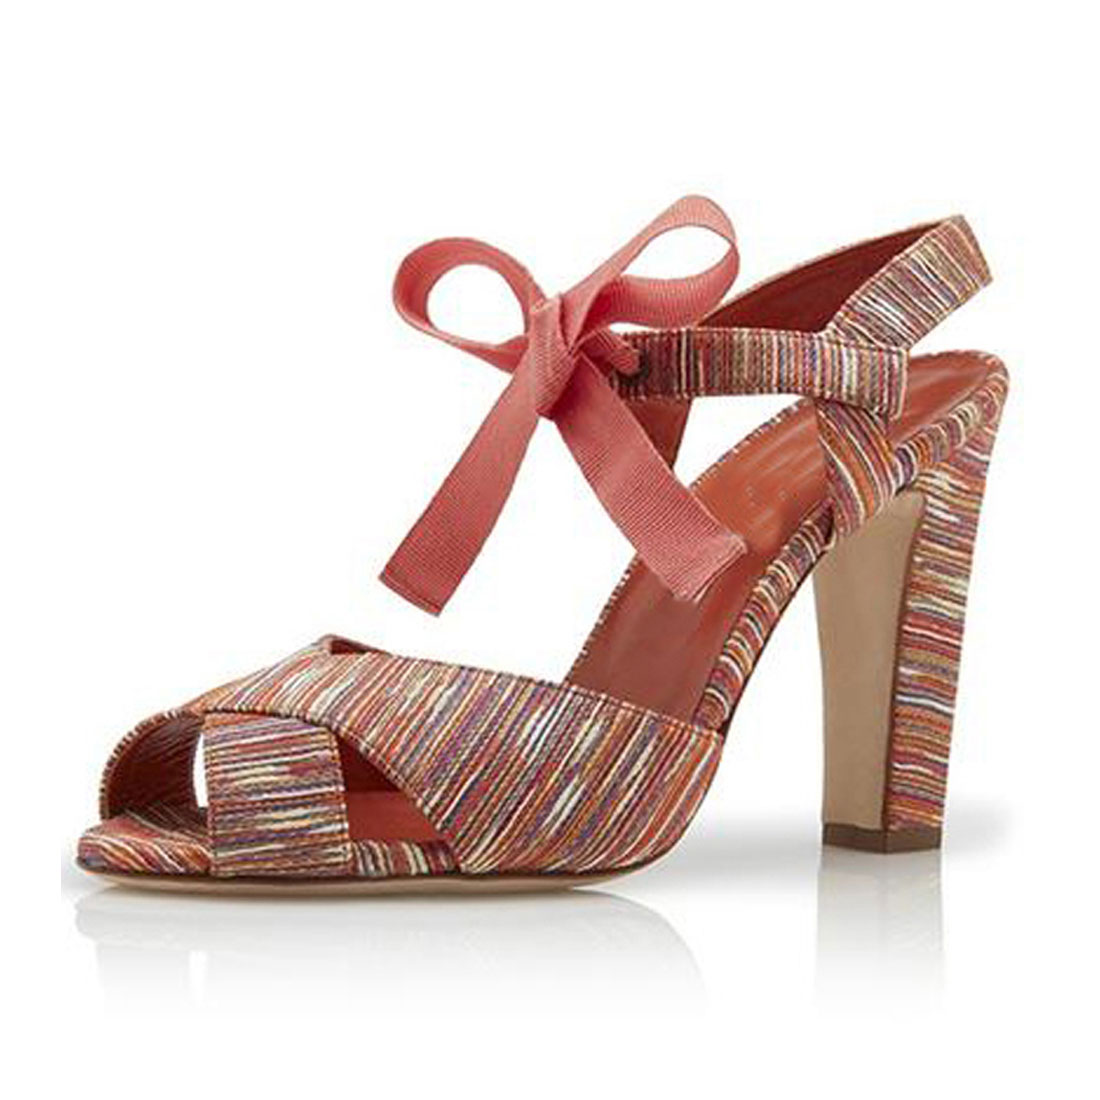 Colourful fabric upper with ribbon bow women shoes summer sandals HS9002